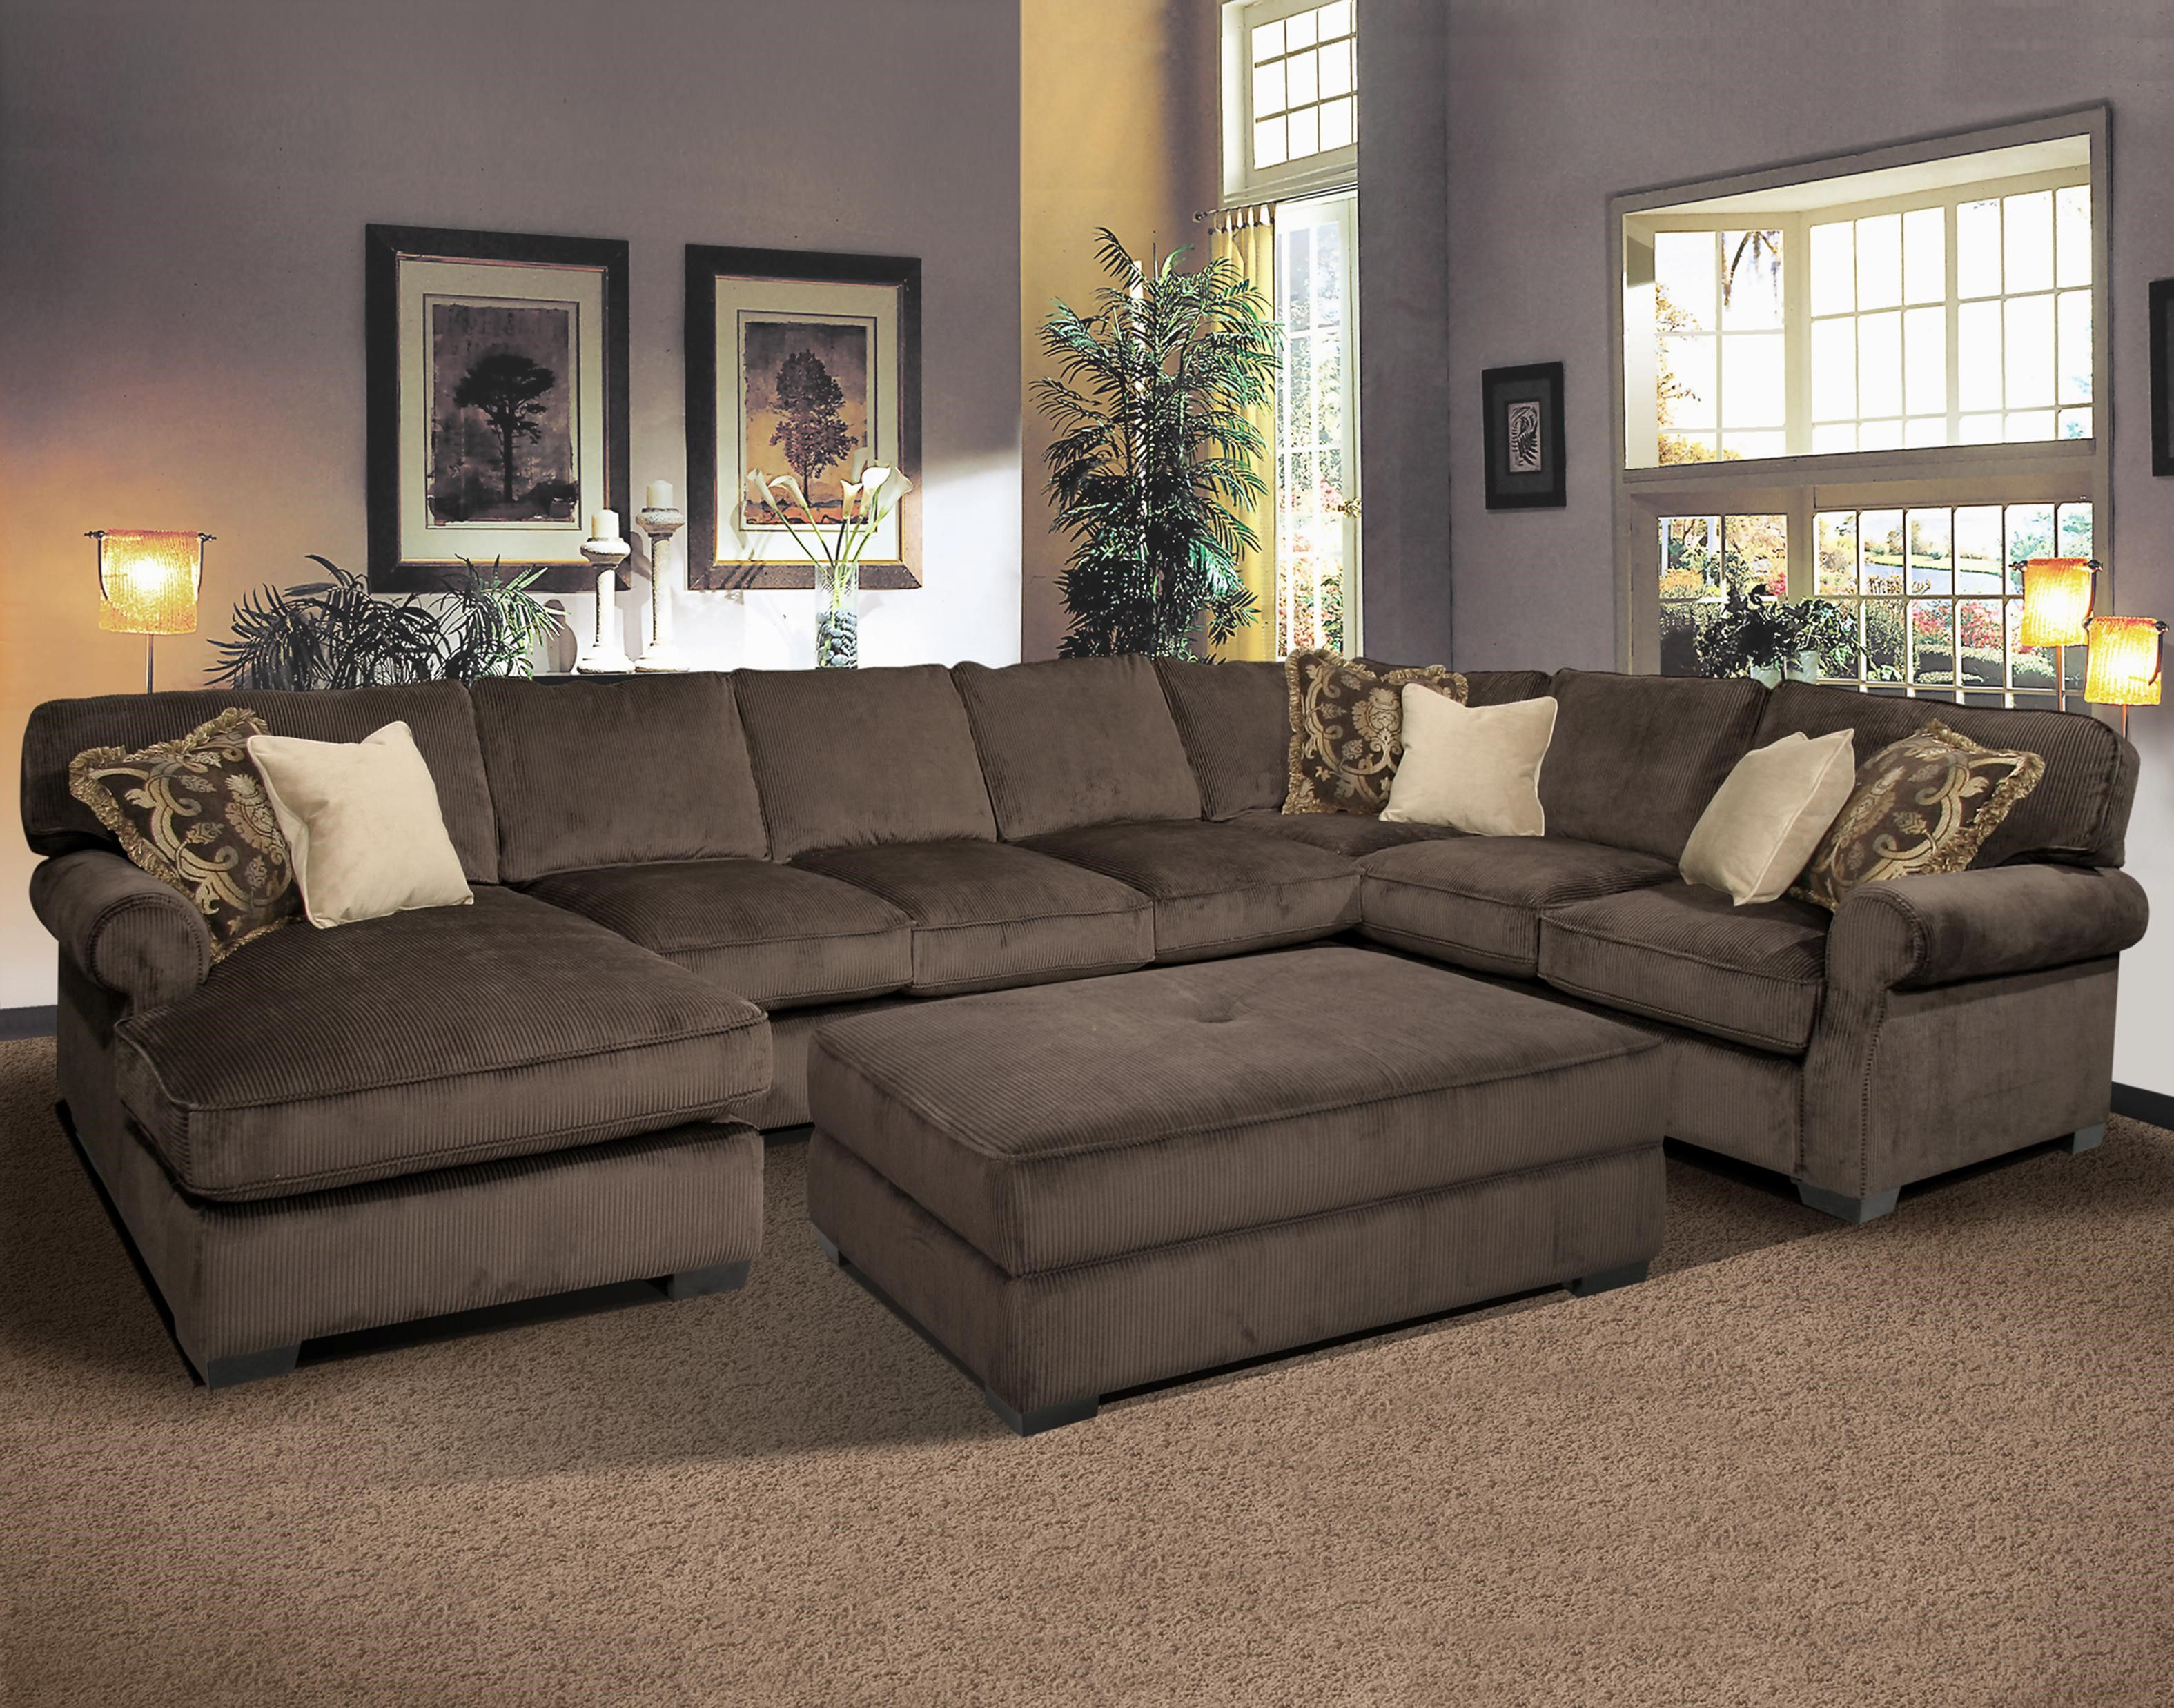 Comfortable Living Room Sofas Design with Elegant ...